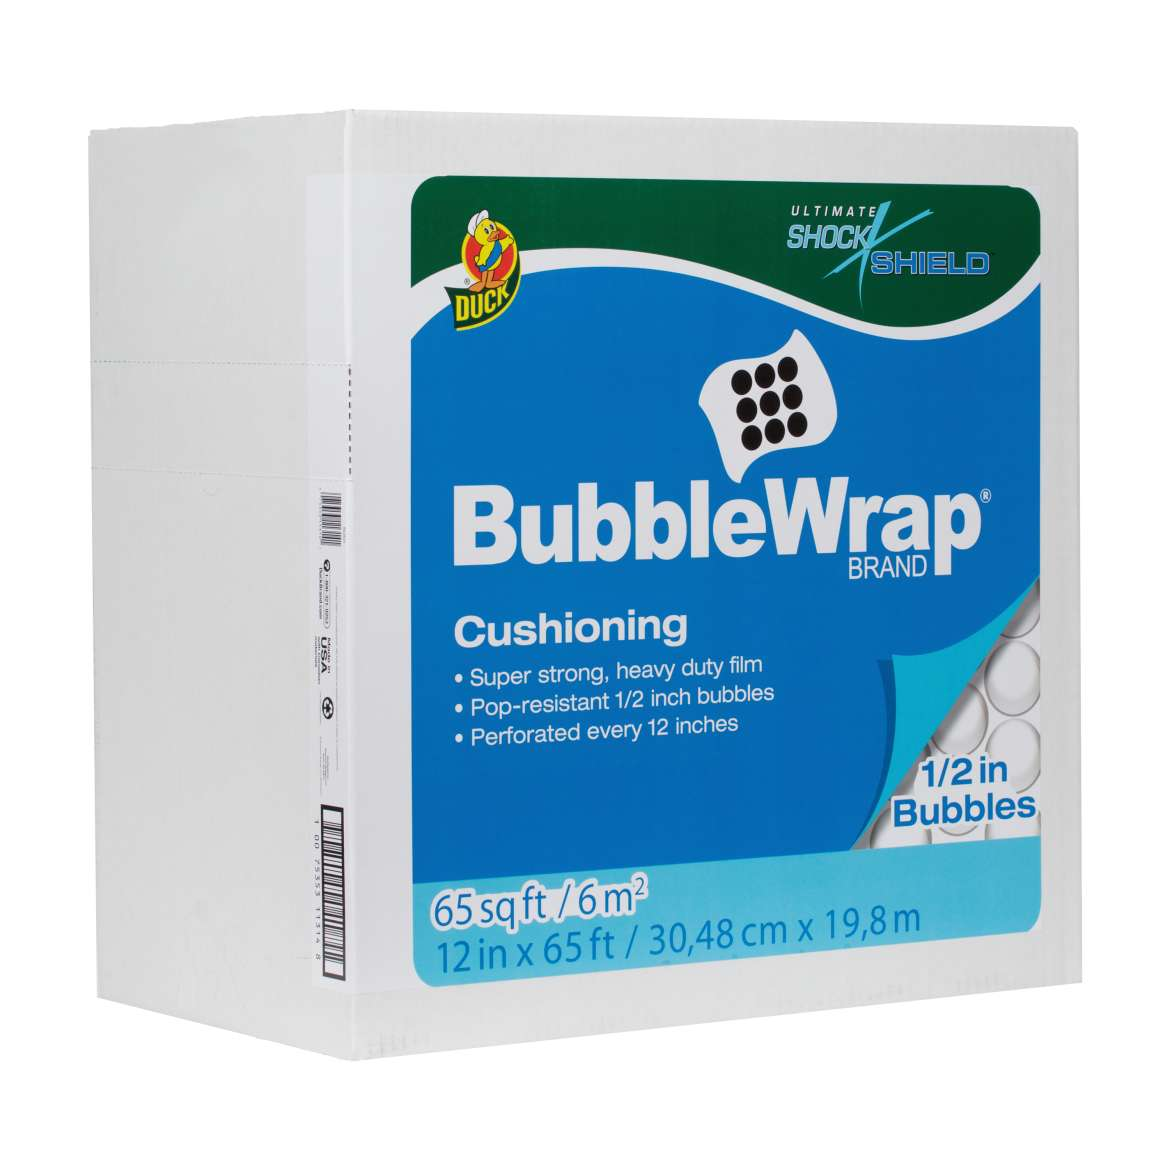 Shock Shield® Bubble Wrap® Cushioning - Clear, 12 in. x 65 ft. Image